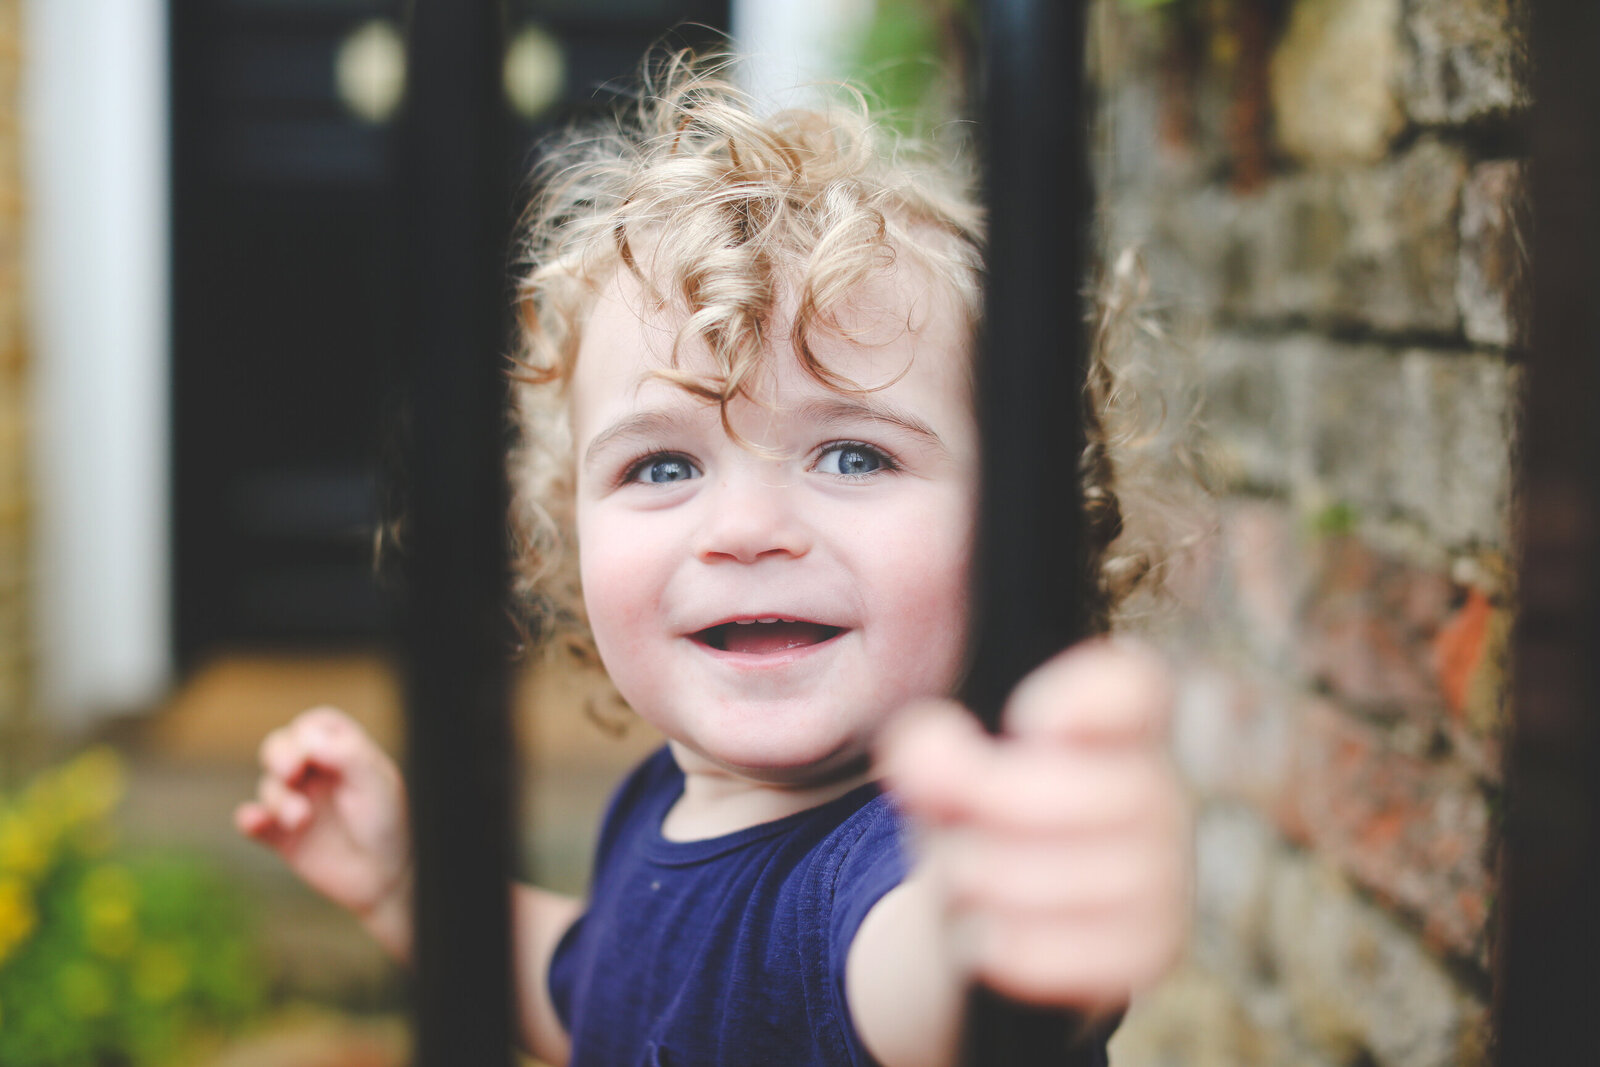 FP_FAMILY-PHOTOGRAPHER-HANNAH-MACGREGOR-CURLY-HAIR-BOY-0034